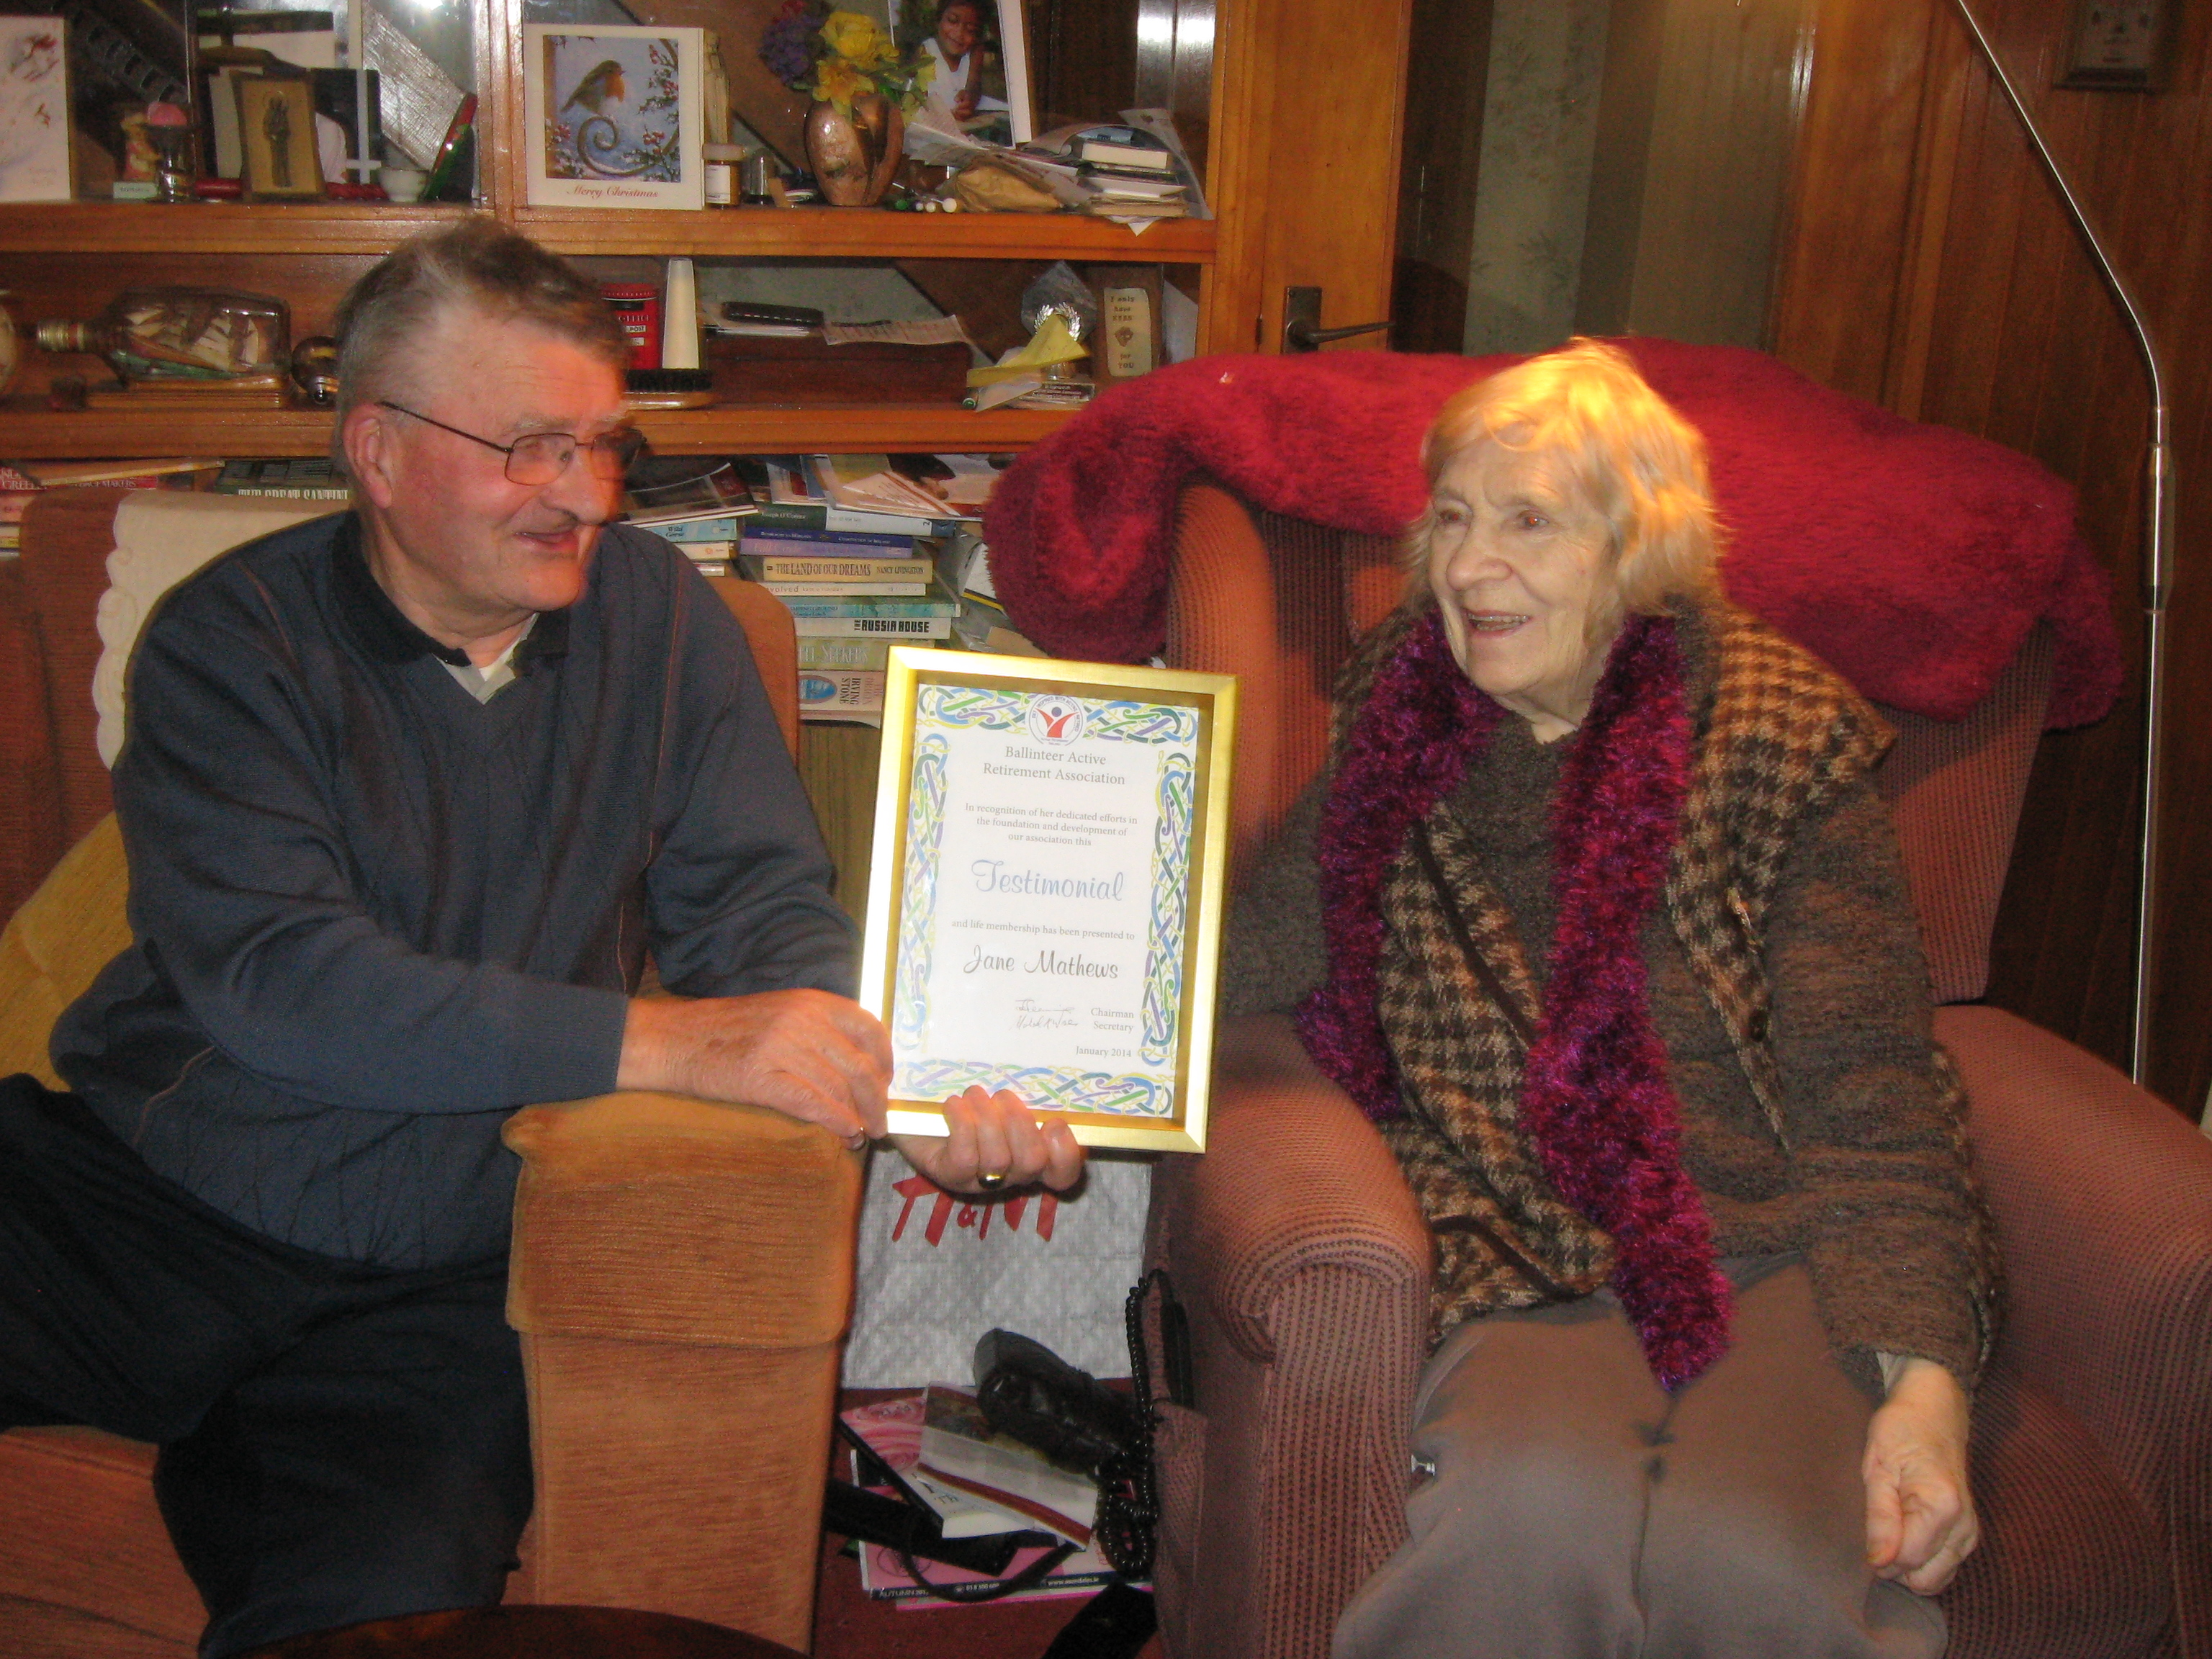 Presentation of Testimonial to Jane Mathews